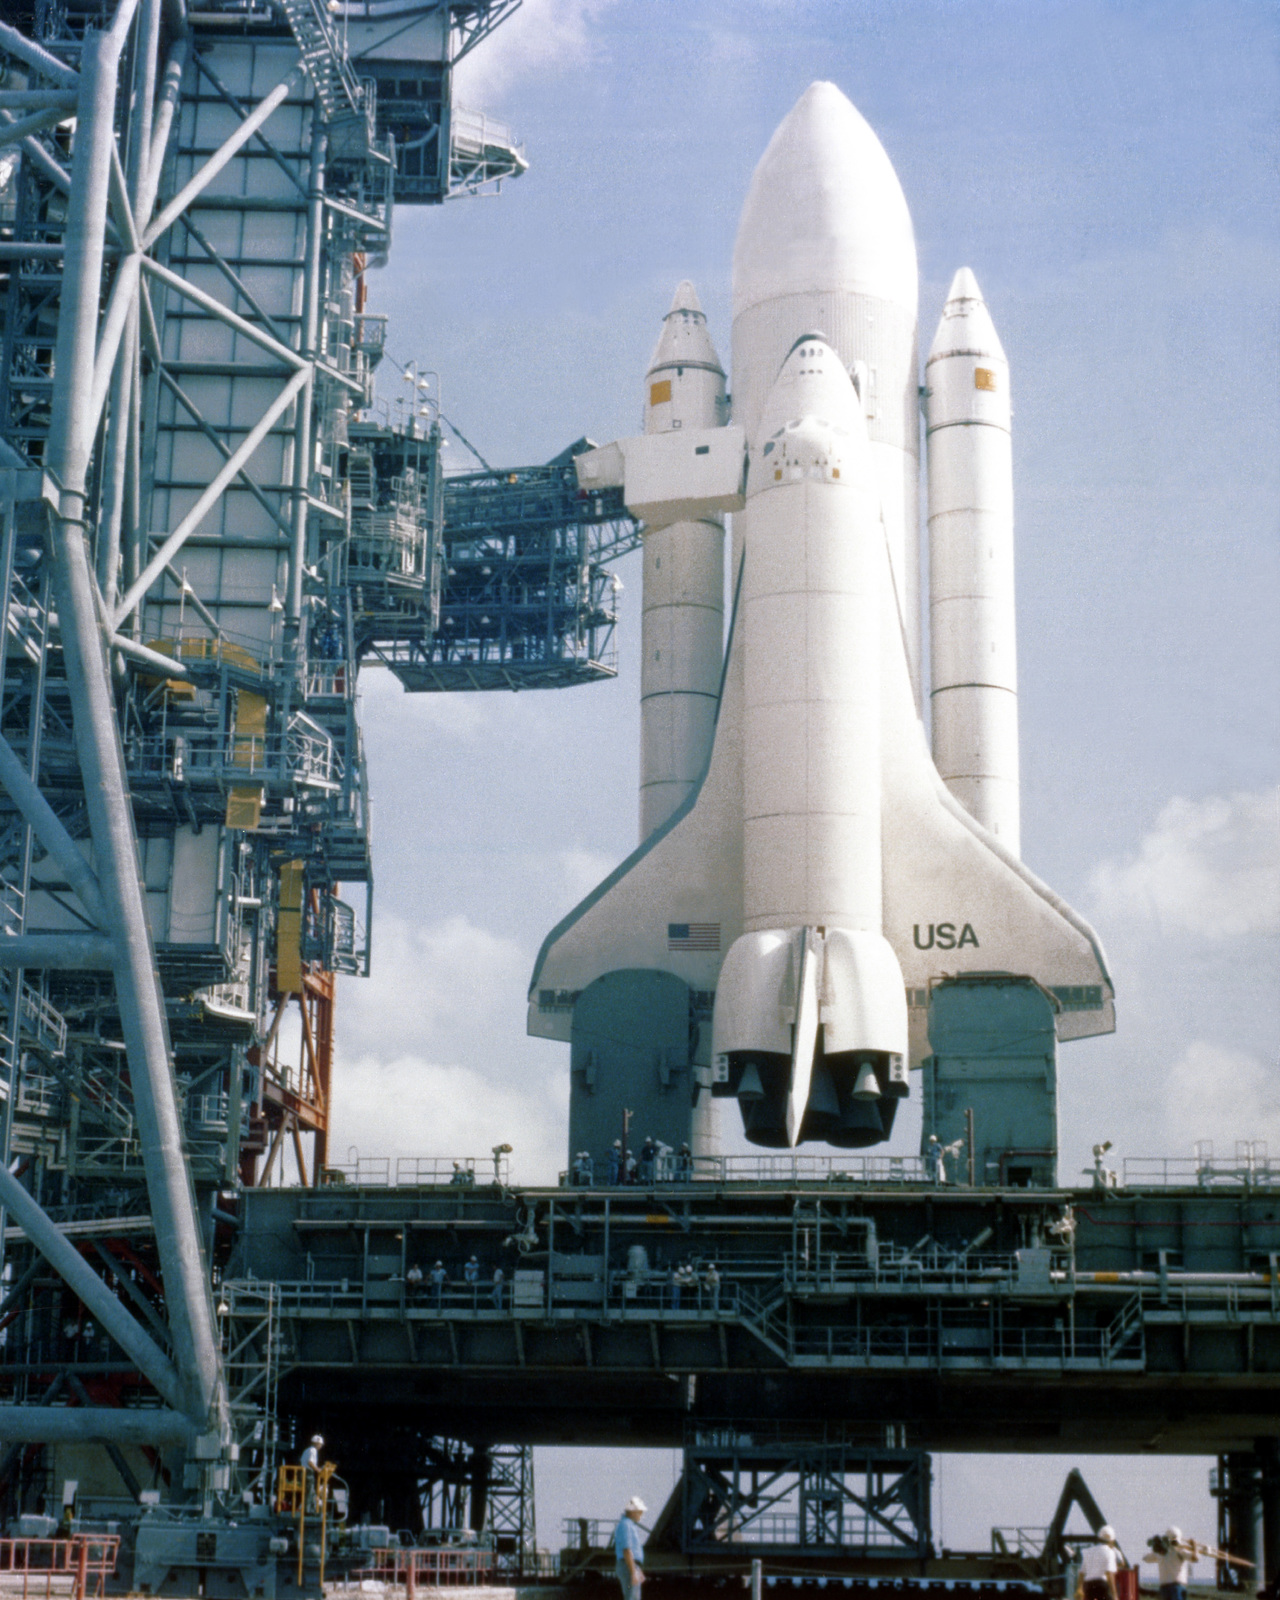 A dummy space shuttle orbiter was assembled and rolled out to the launch site as part of an exercise to verify that shuttle elements are compatible with the spaceport's assembly and launch facilities, and ground support equipment